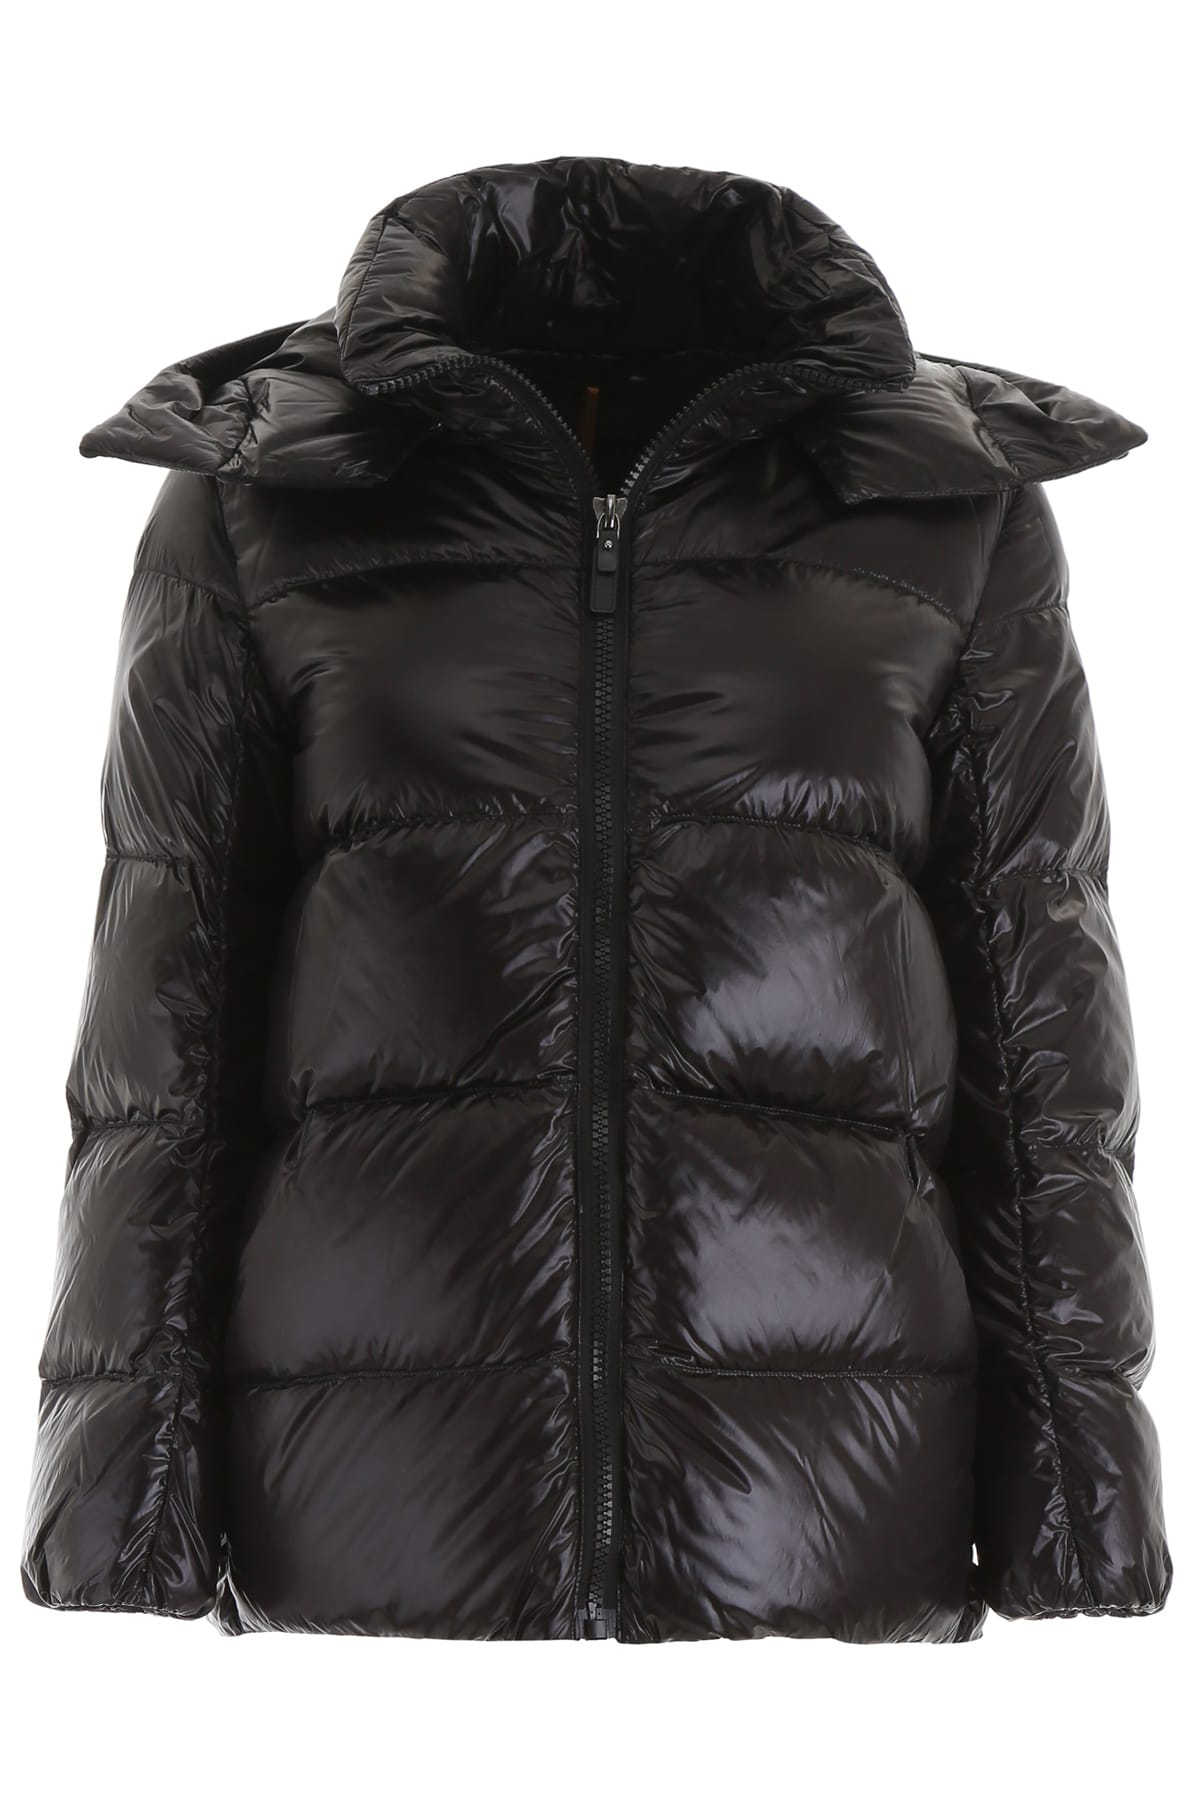 S Max Mara Here is The Cube Glossby Puffer Jacket